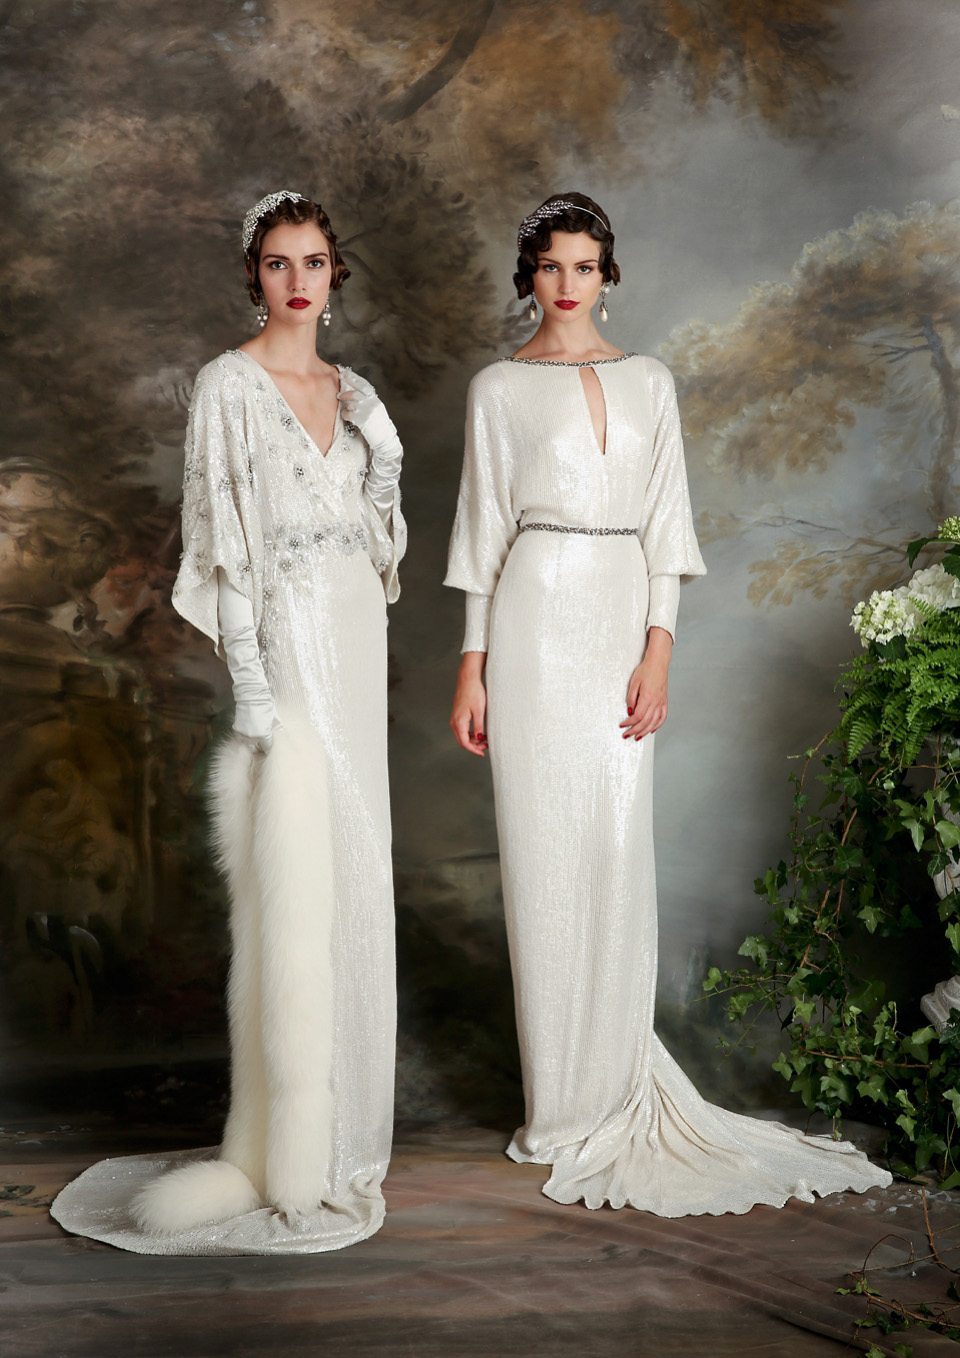 Eliza jane howell elegant art deco inspired wedding dresses love eliza jane howell elegant art deco inspired wedding dresses love my dress uk wedding blog junglespirit Choice Image